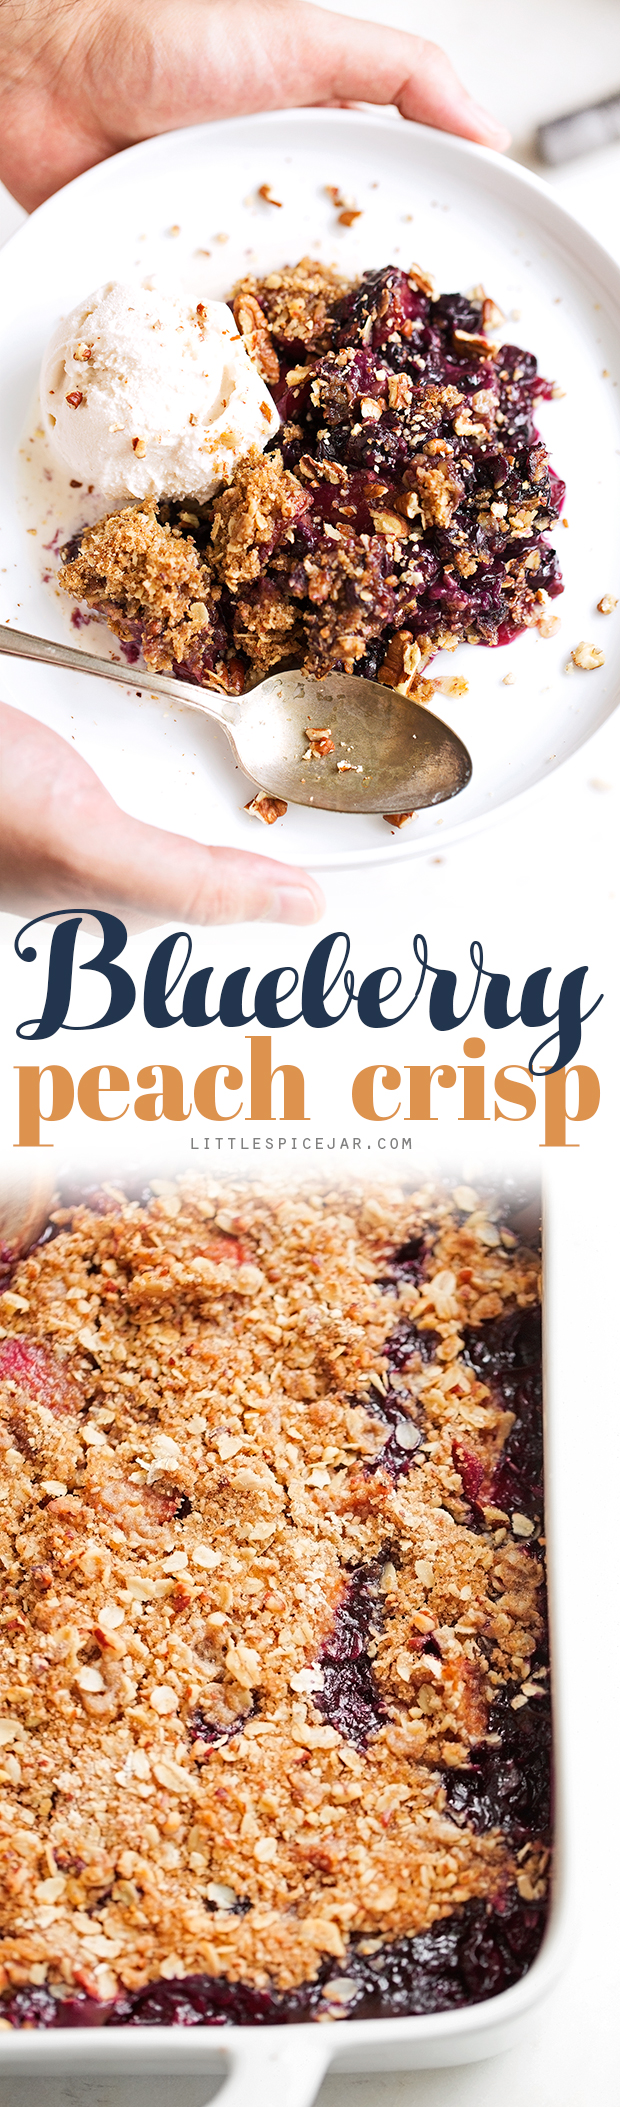 Blueberry Peach Crisp - A super summery dessert topped with a pecan and oat crumble #blueberrycrisp #peachcrisp #blueberrycrumble #peachcrumble | Littlespicejar.com